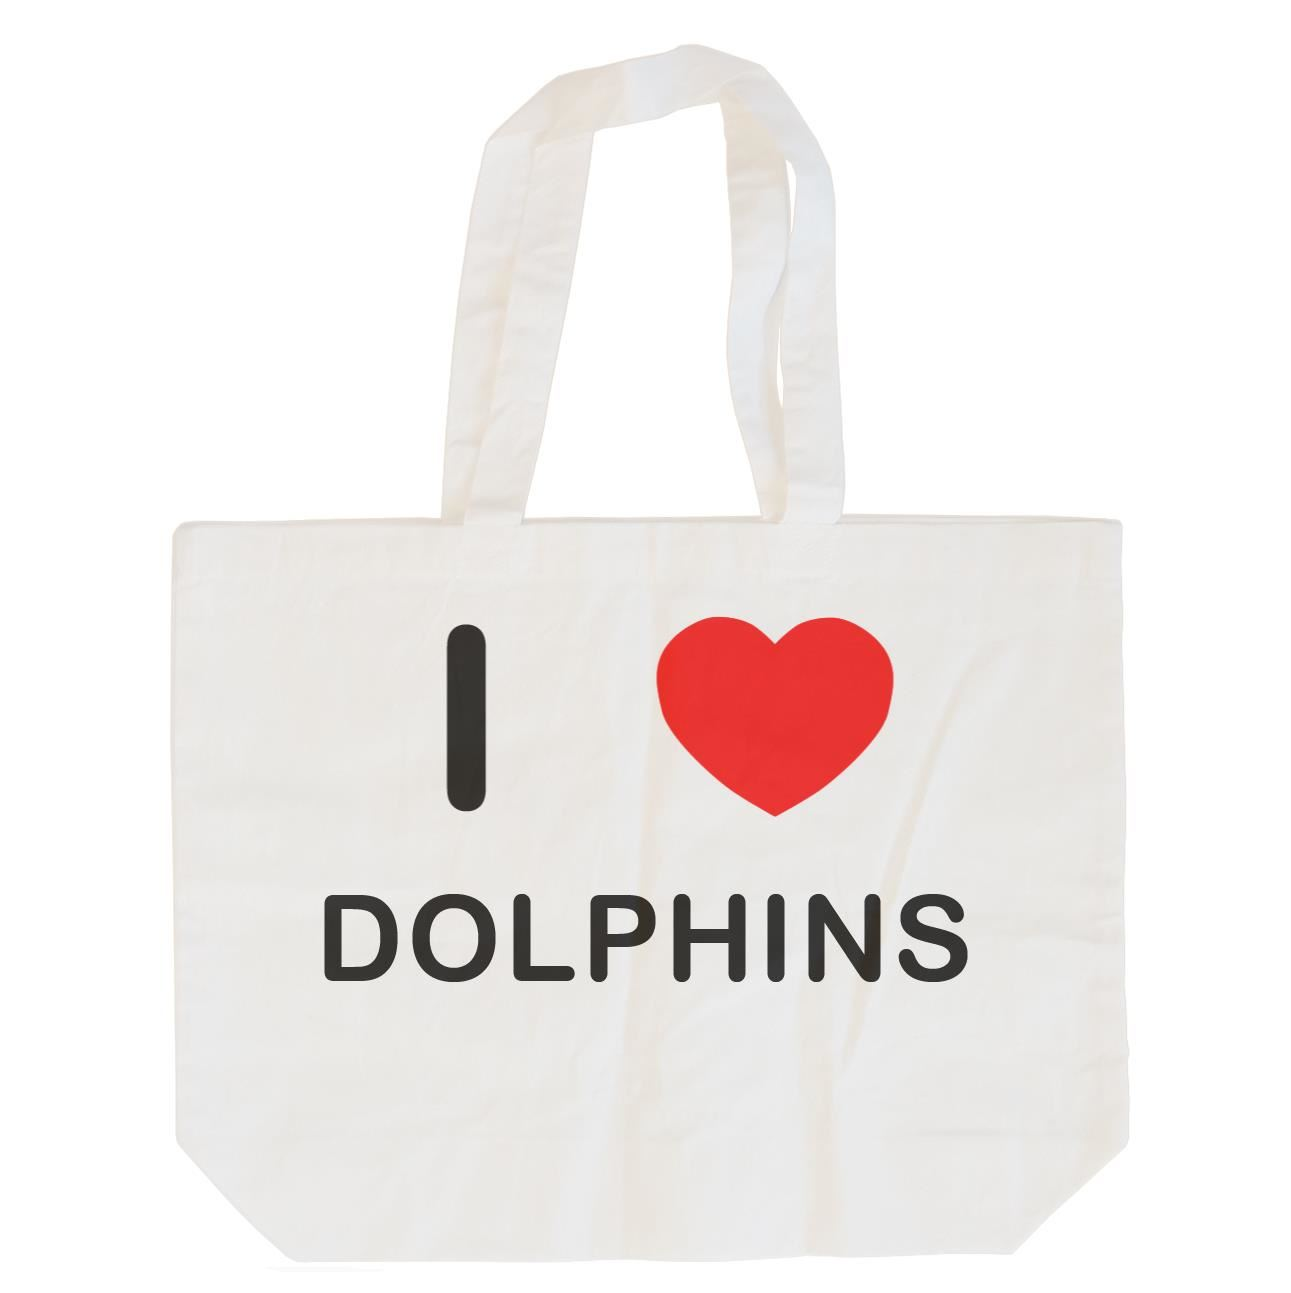 I Love Dolphins - Cotton Bag | Size choice Tote, Shopper or Sling